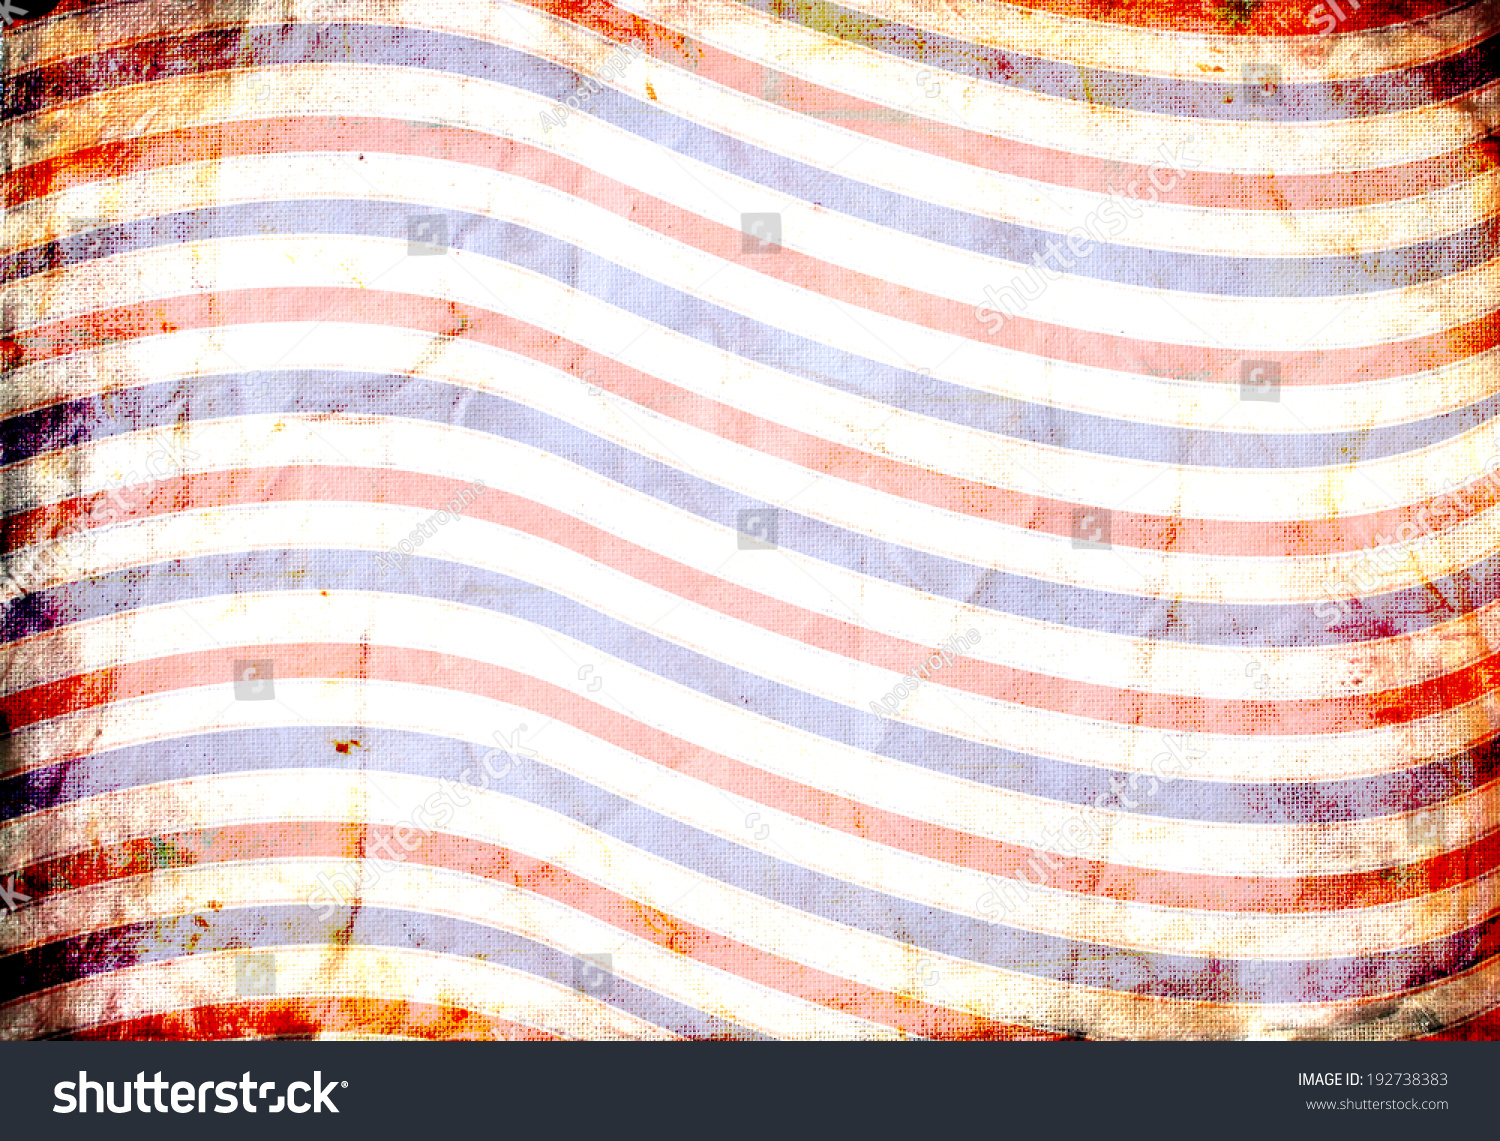 Red white and blue background vintage patriotic july 4th for Th background color